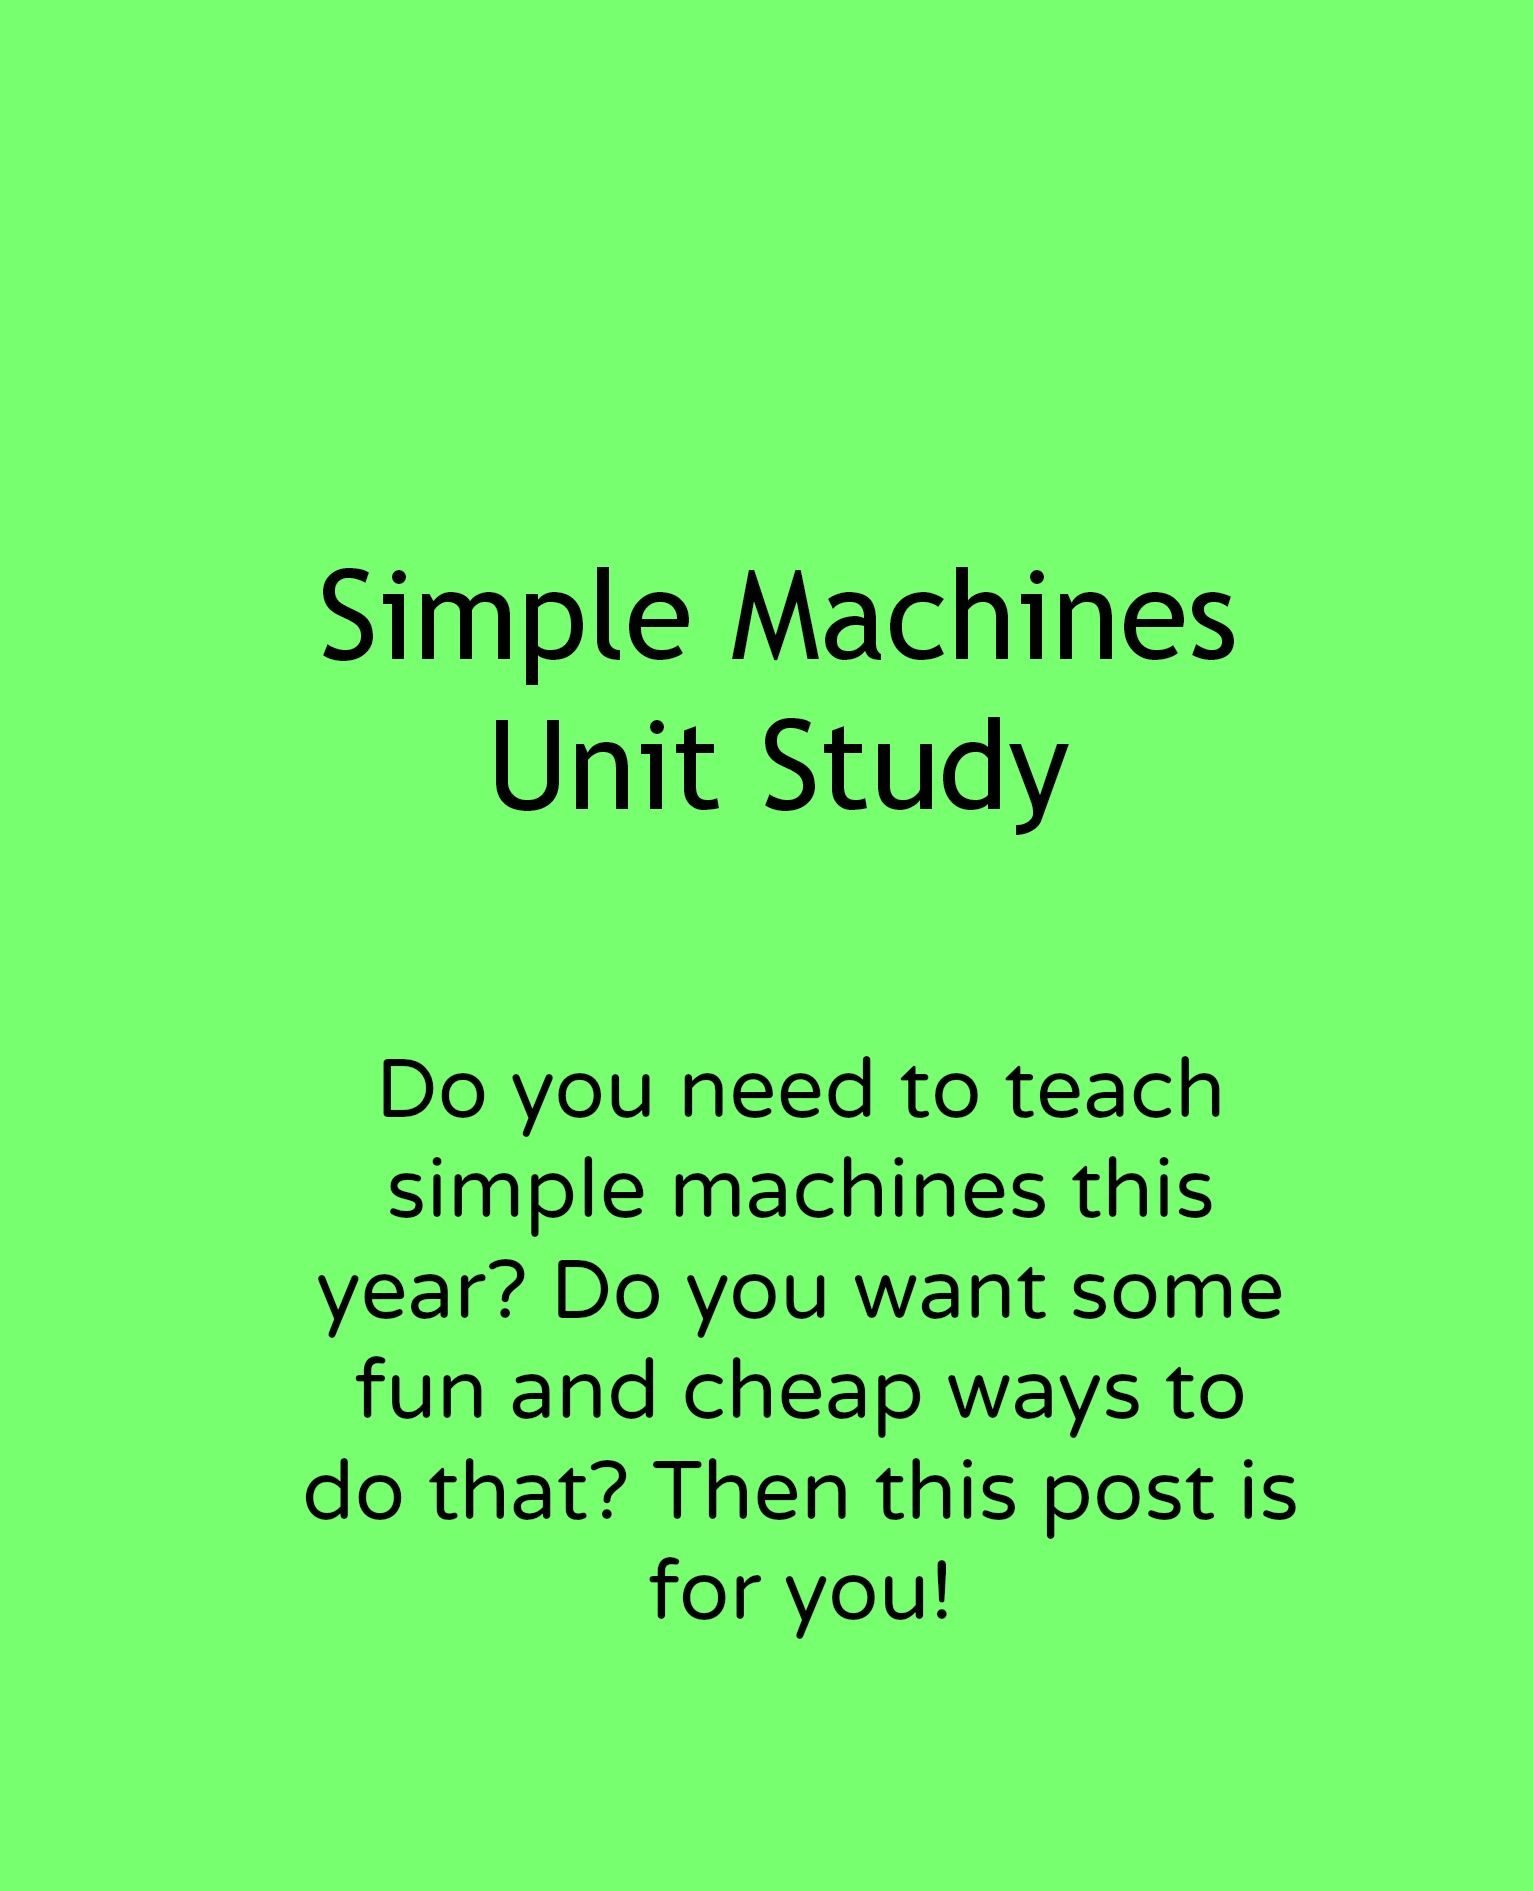 Simple Machines Unit Study With Some Cheap And Fun Ideas For Making The Topic Stick Adventures